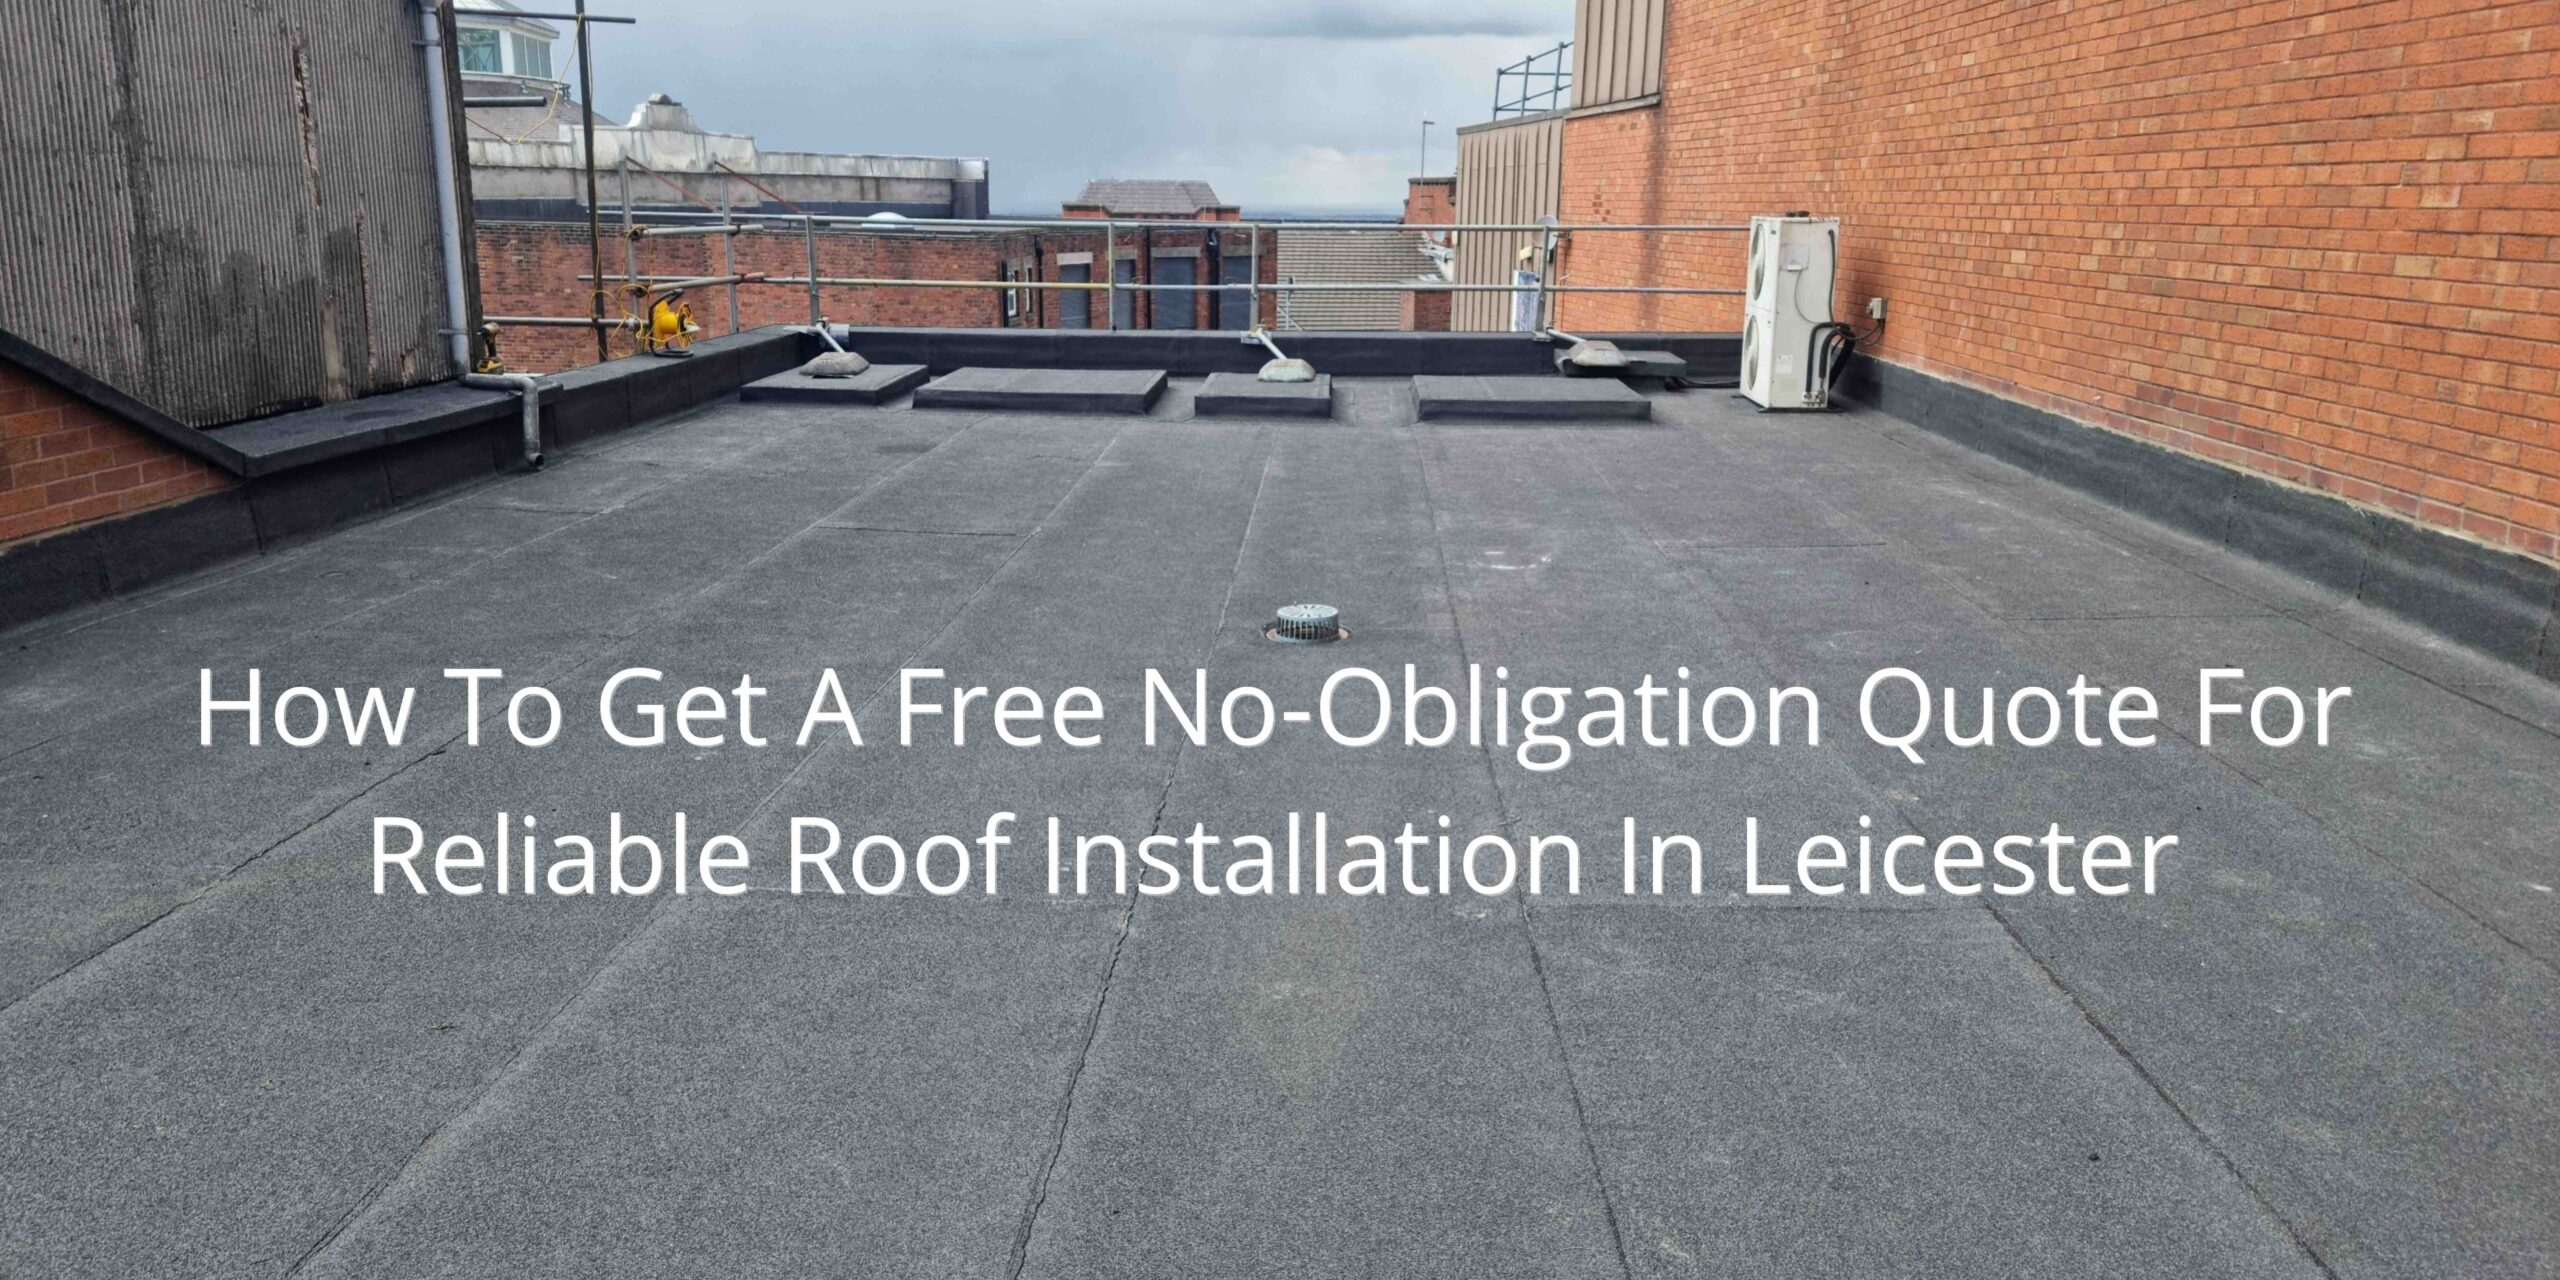 How To Get A Free No Obligation Quote For Reliable Roof Installation In Leicester